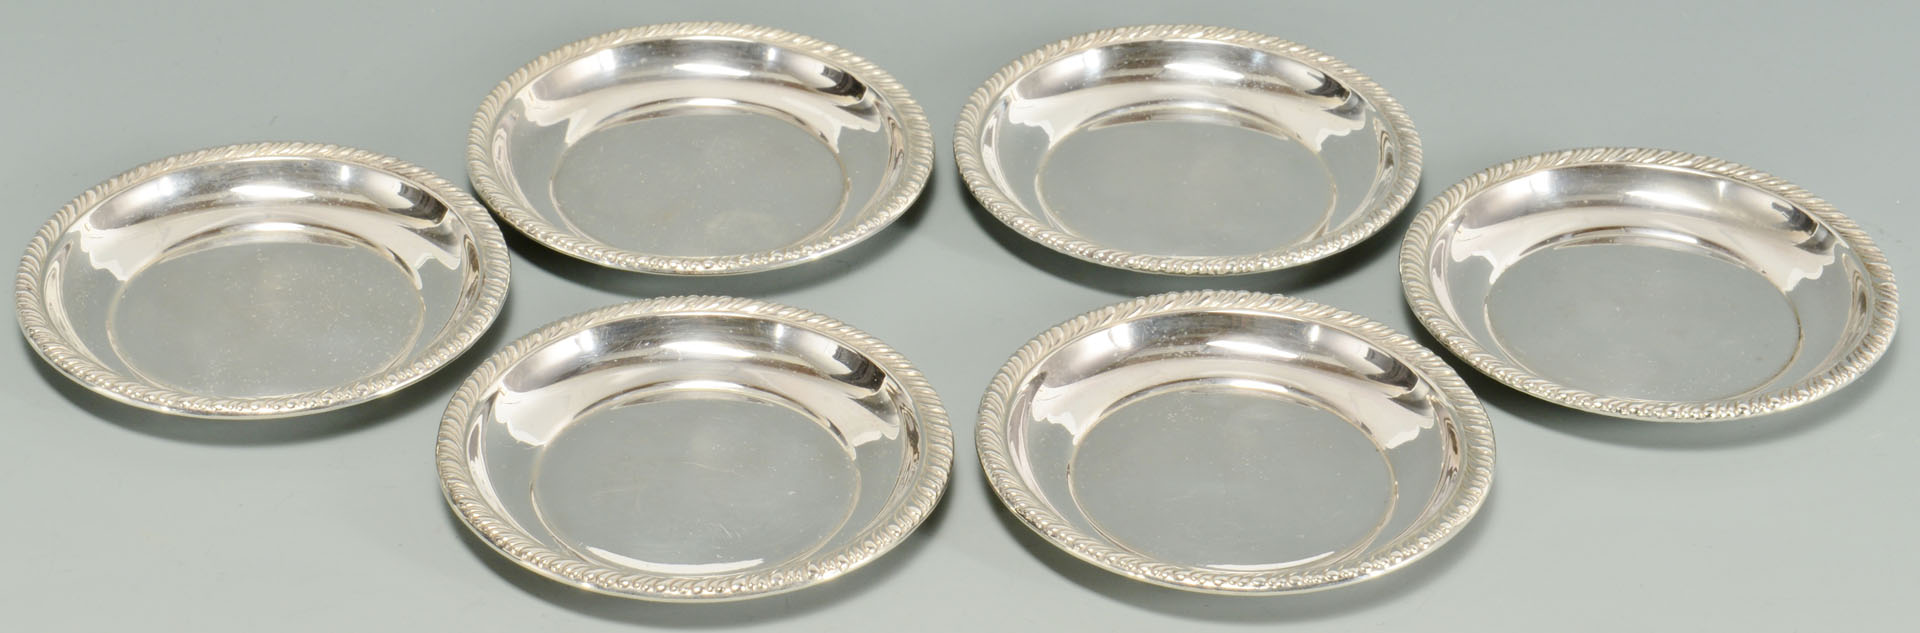 Lot 593: 2 Prs. Sterling Creamers & Sugars, plus Butter Pat